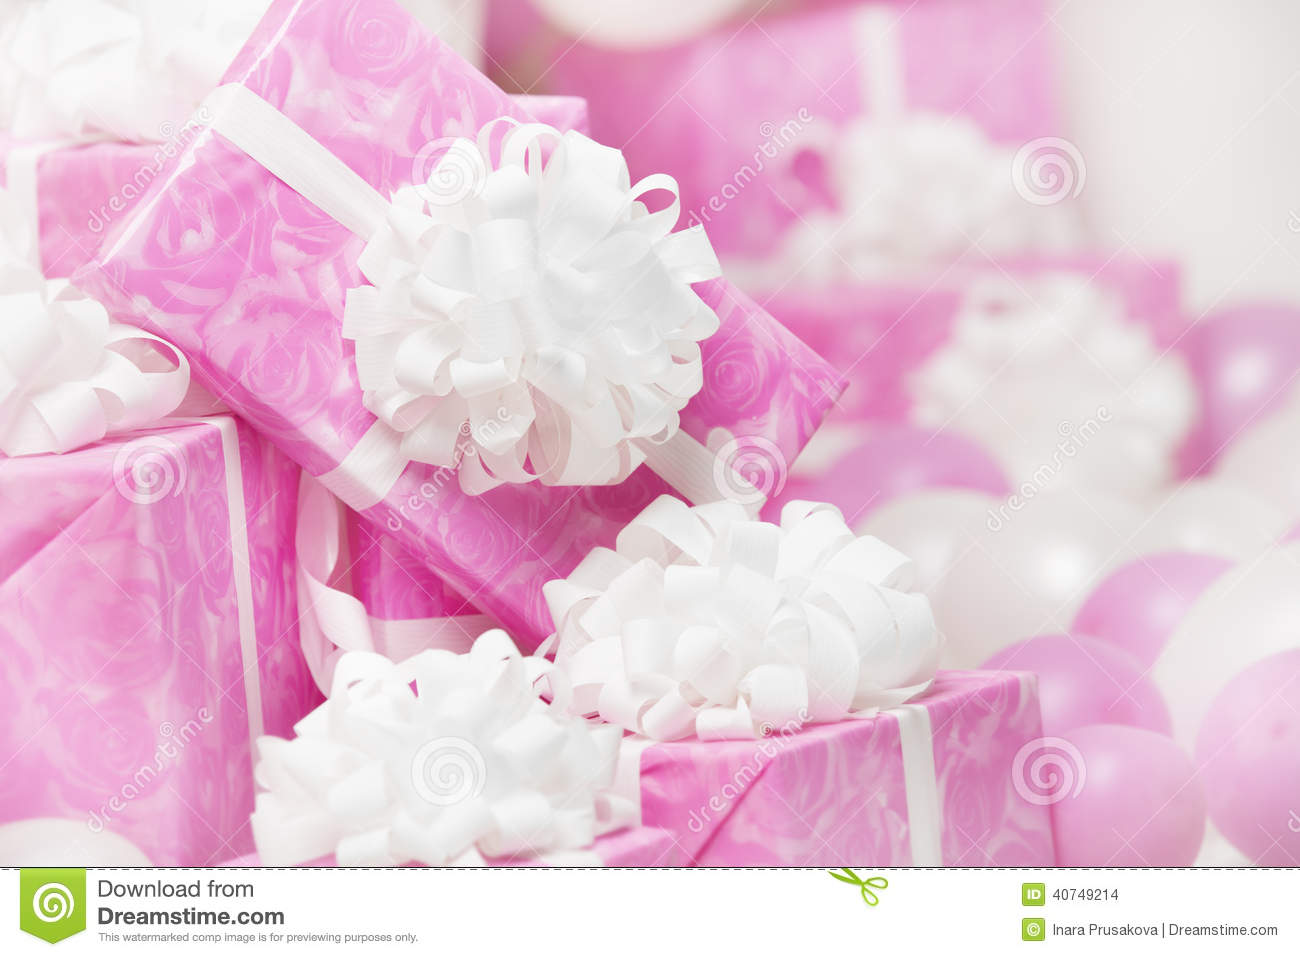 presents gift boxes pink background for female or woman birthda